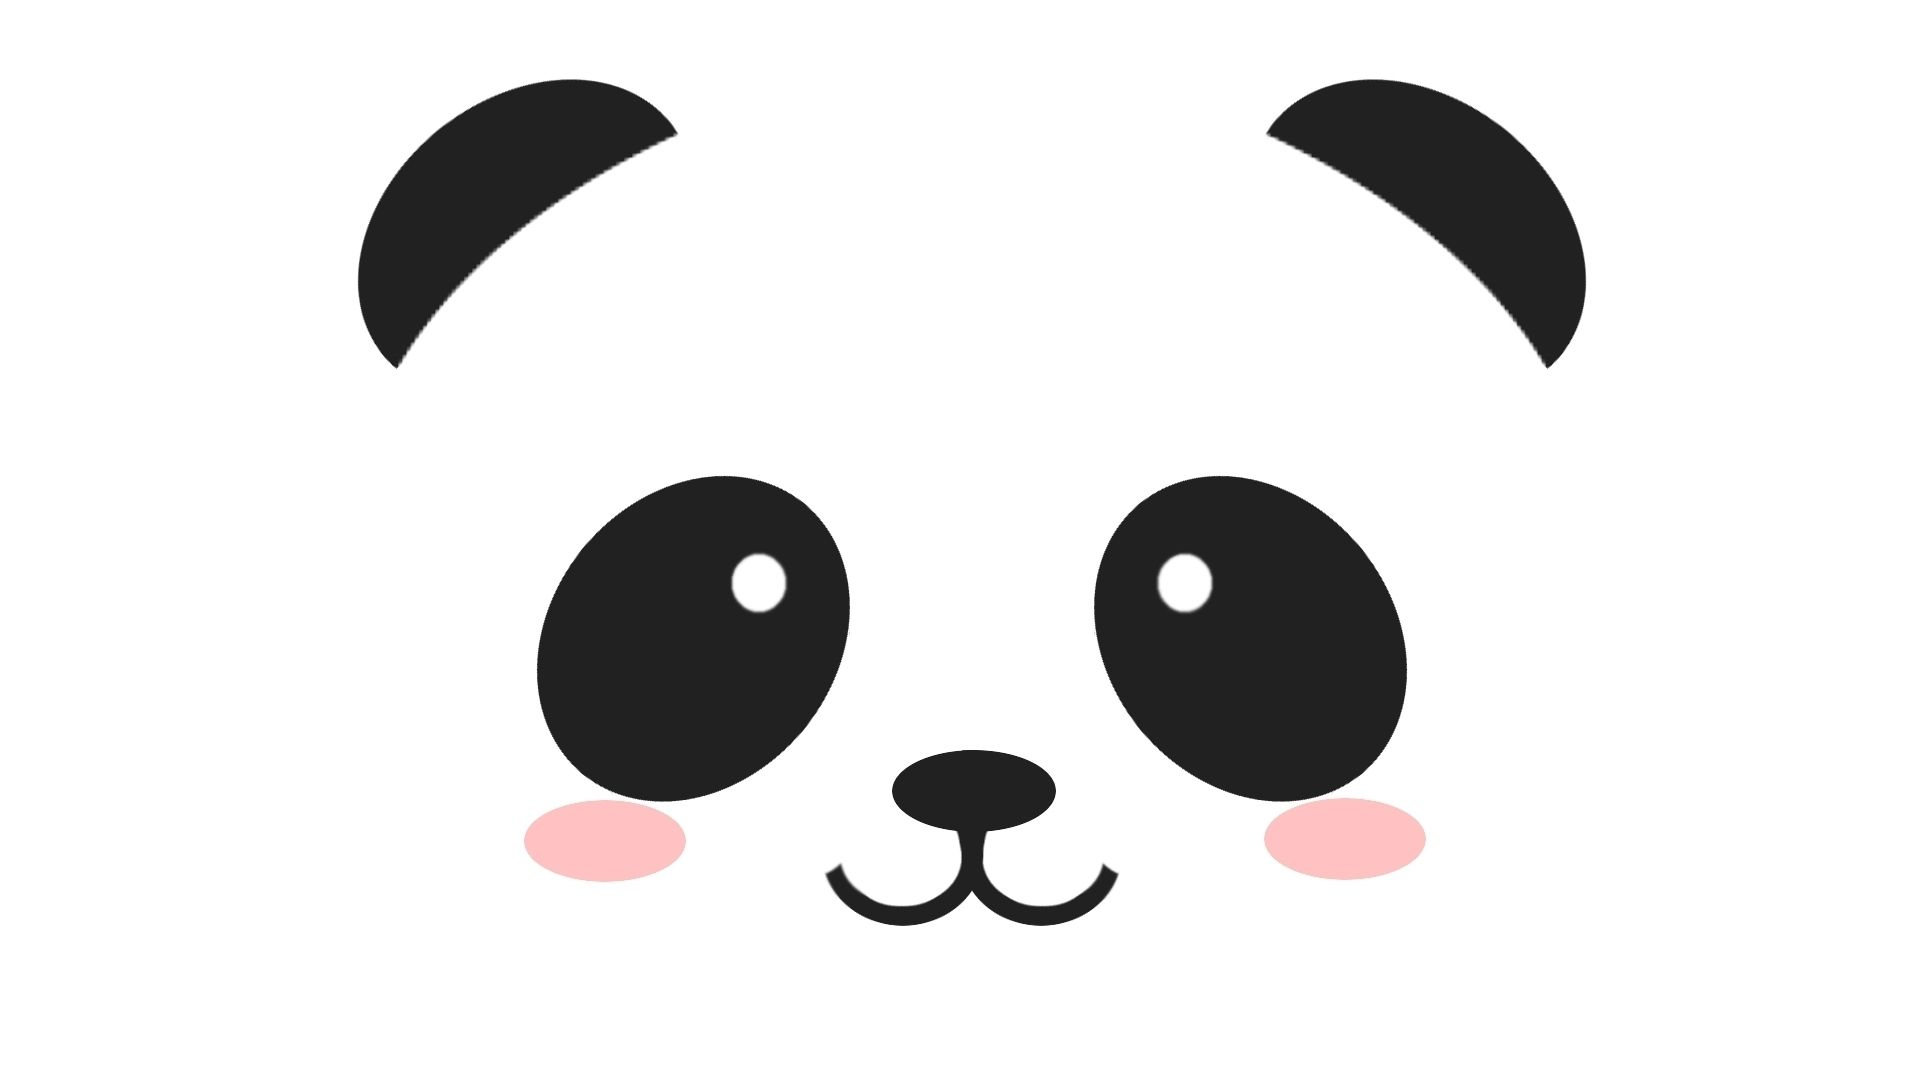 panda bear cake template - cute panda face panda birthday pinterest